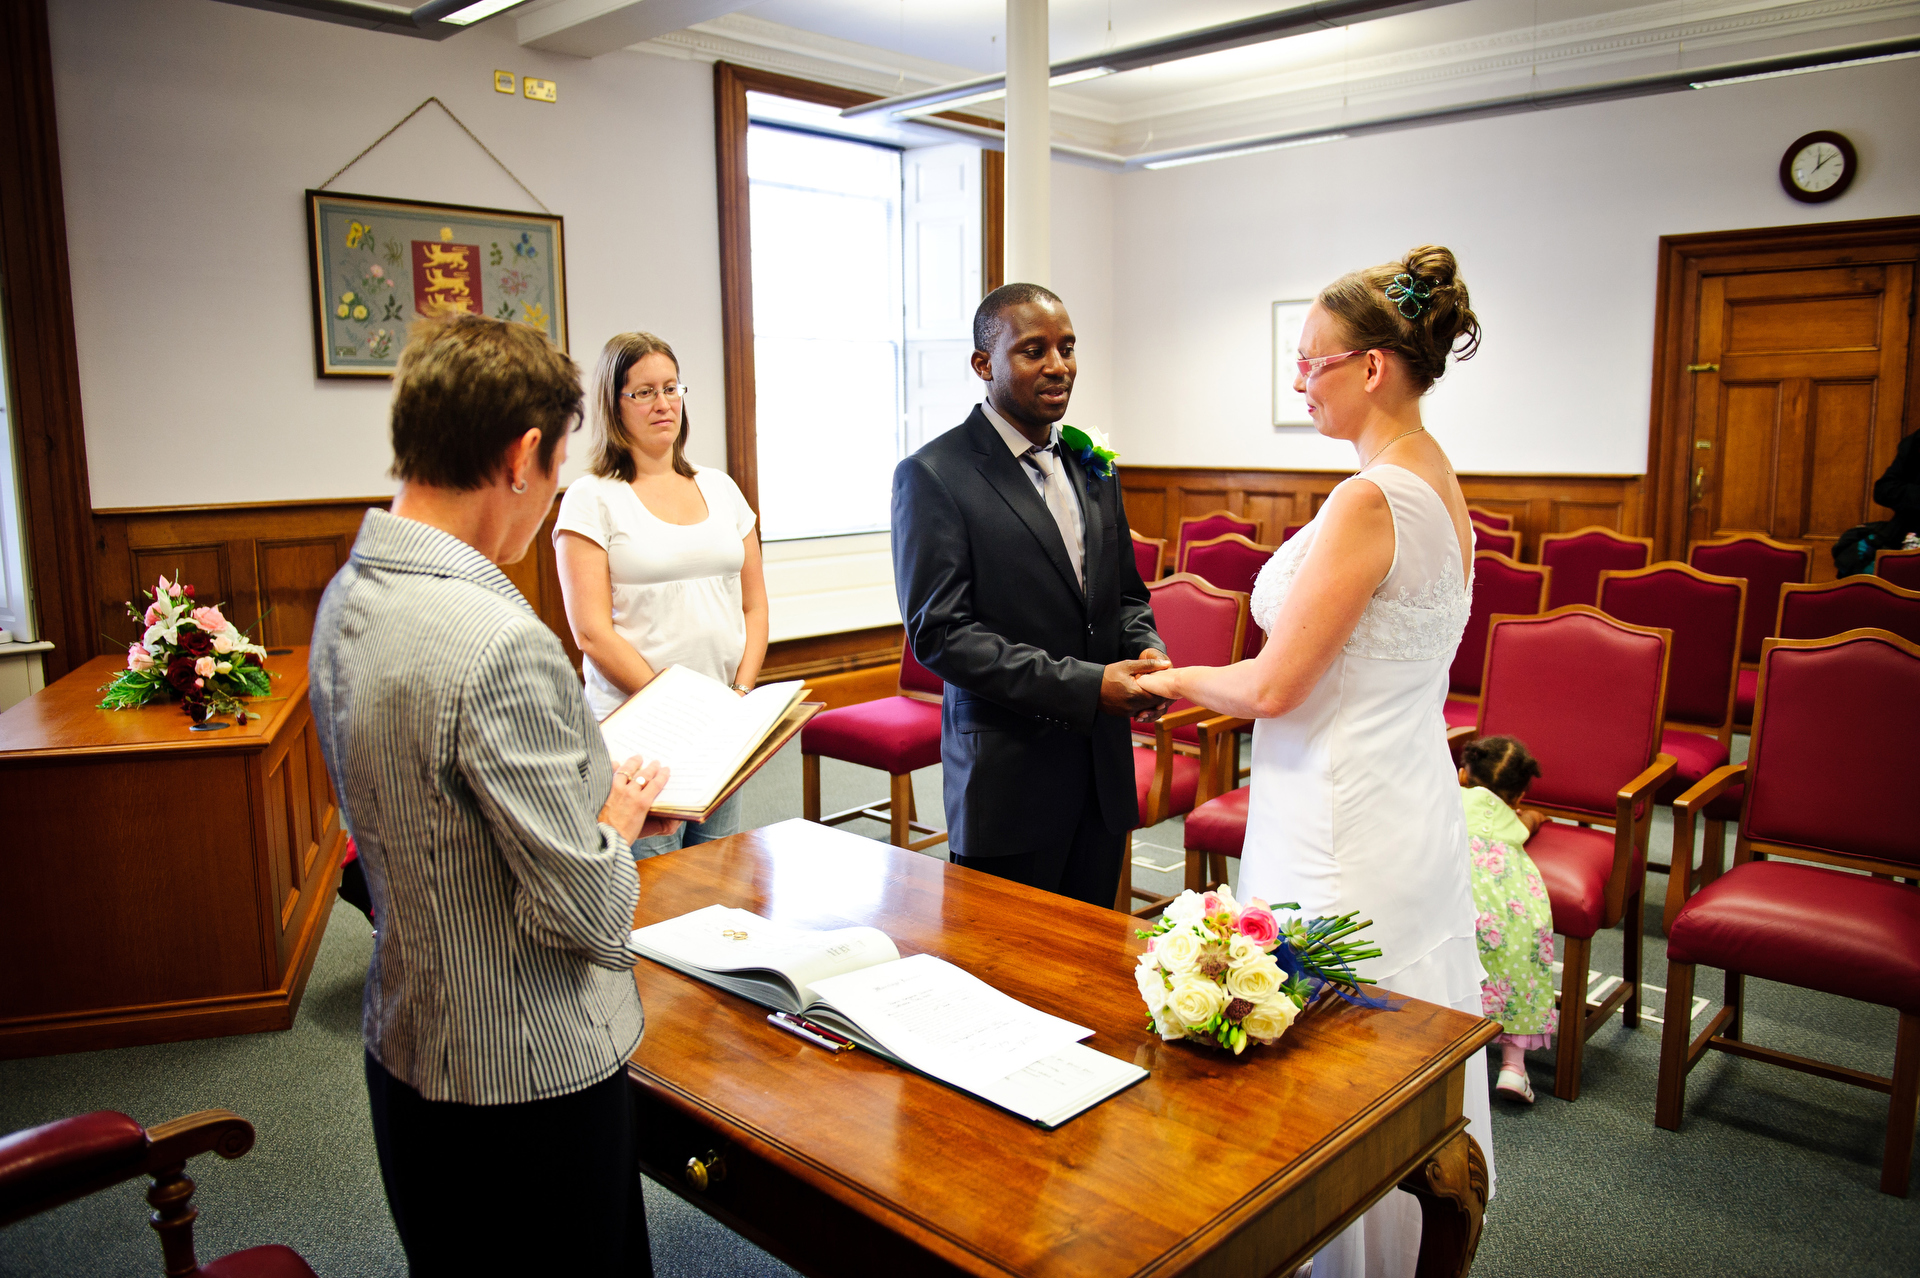 Marriage Photo from Guernsey Royal Court | The couple pledges their vows to one another